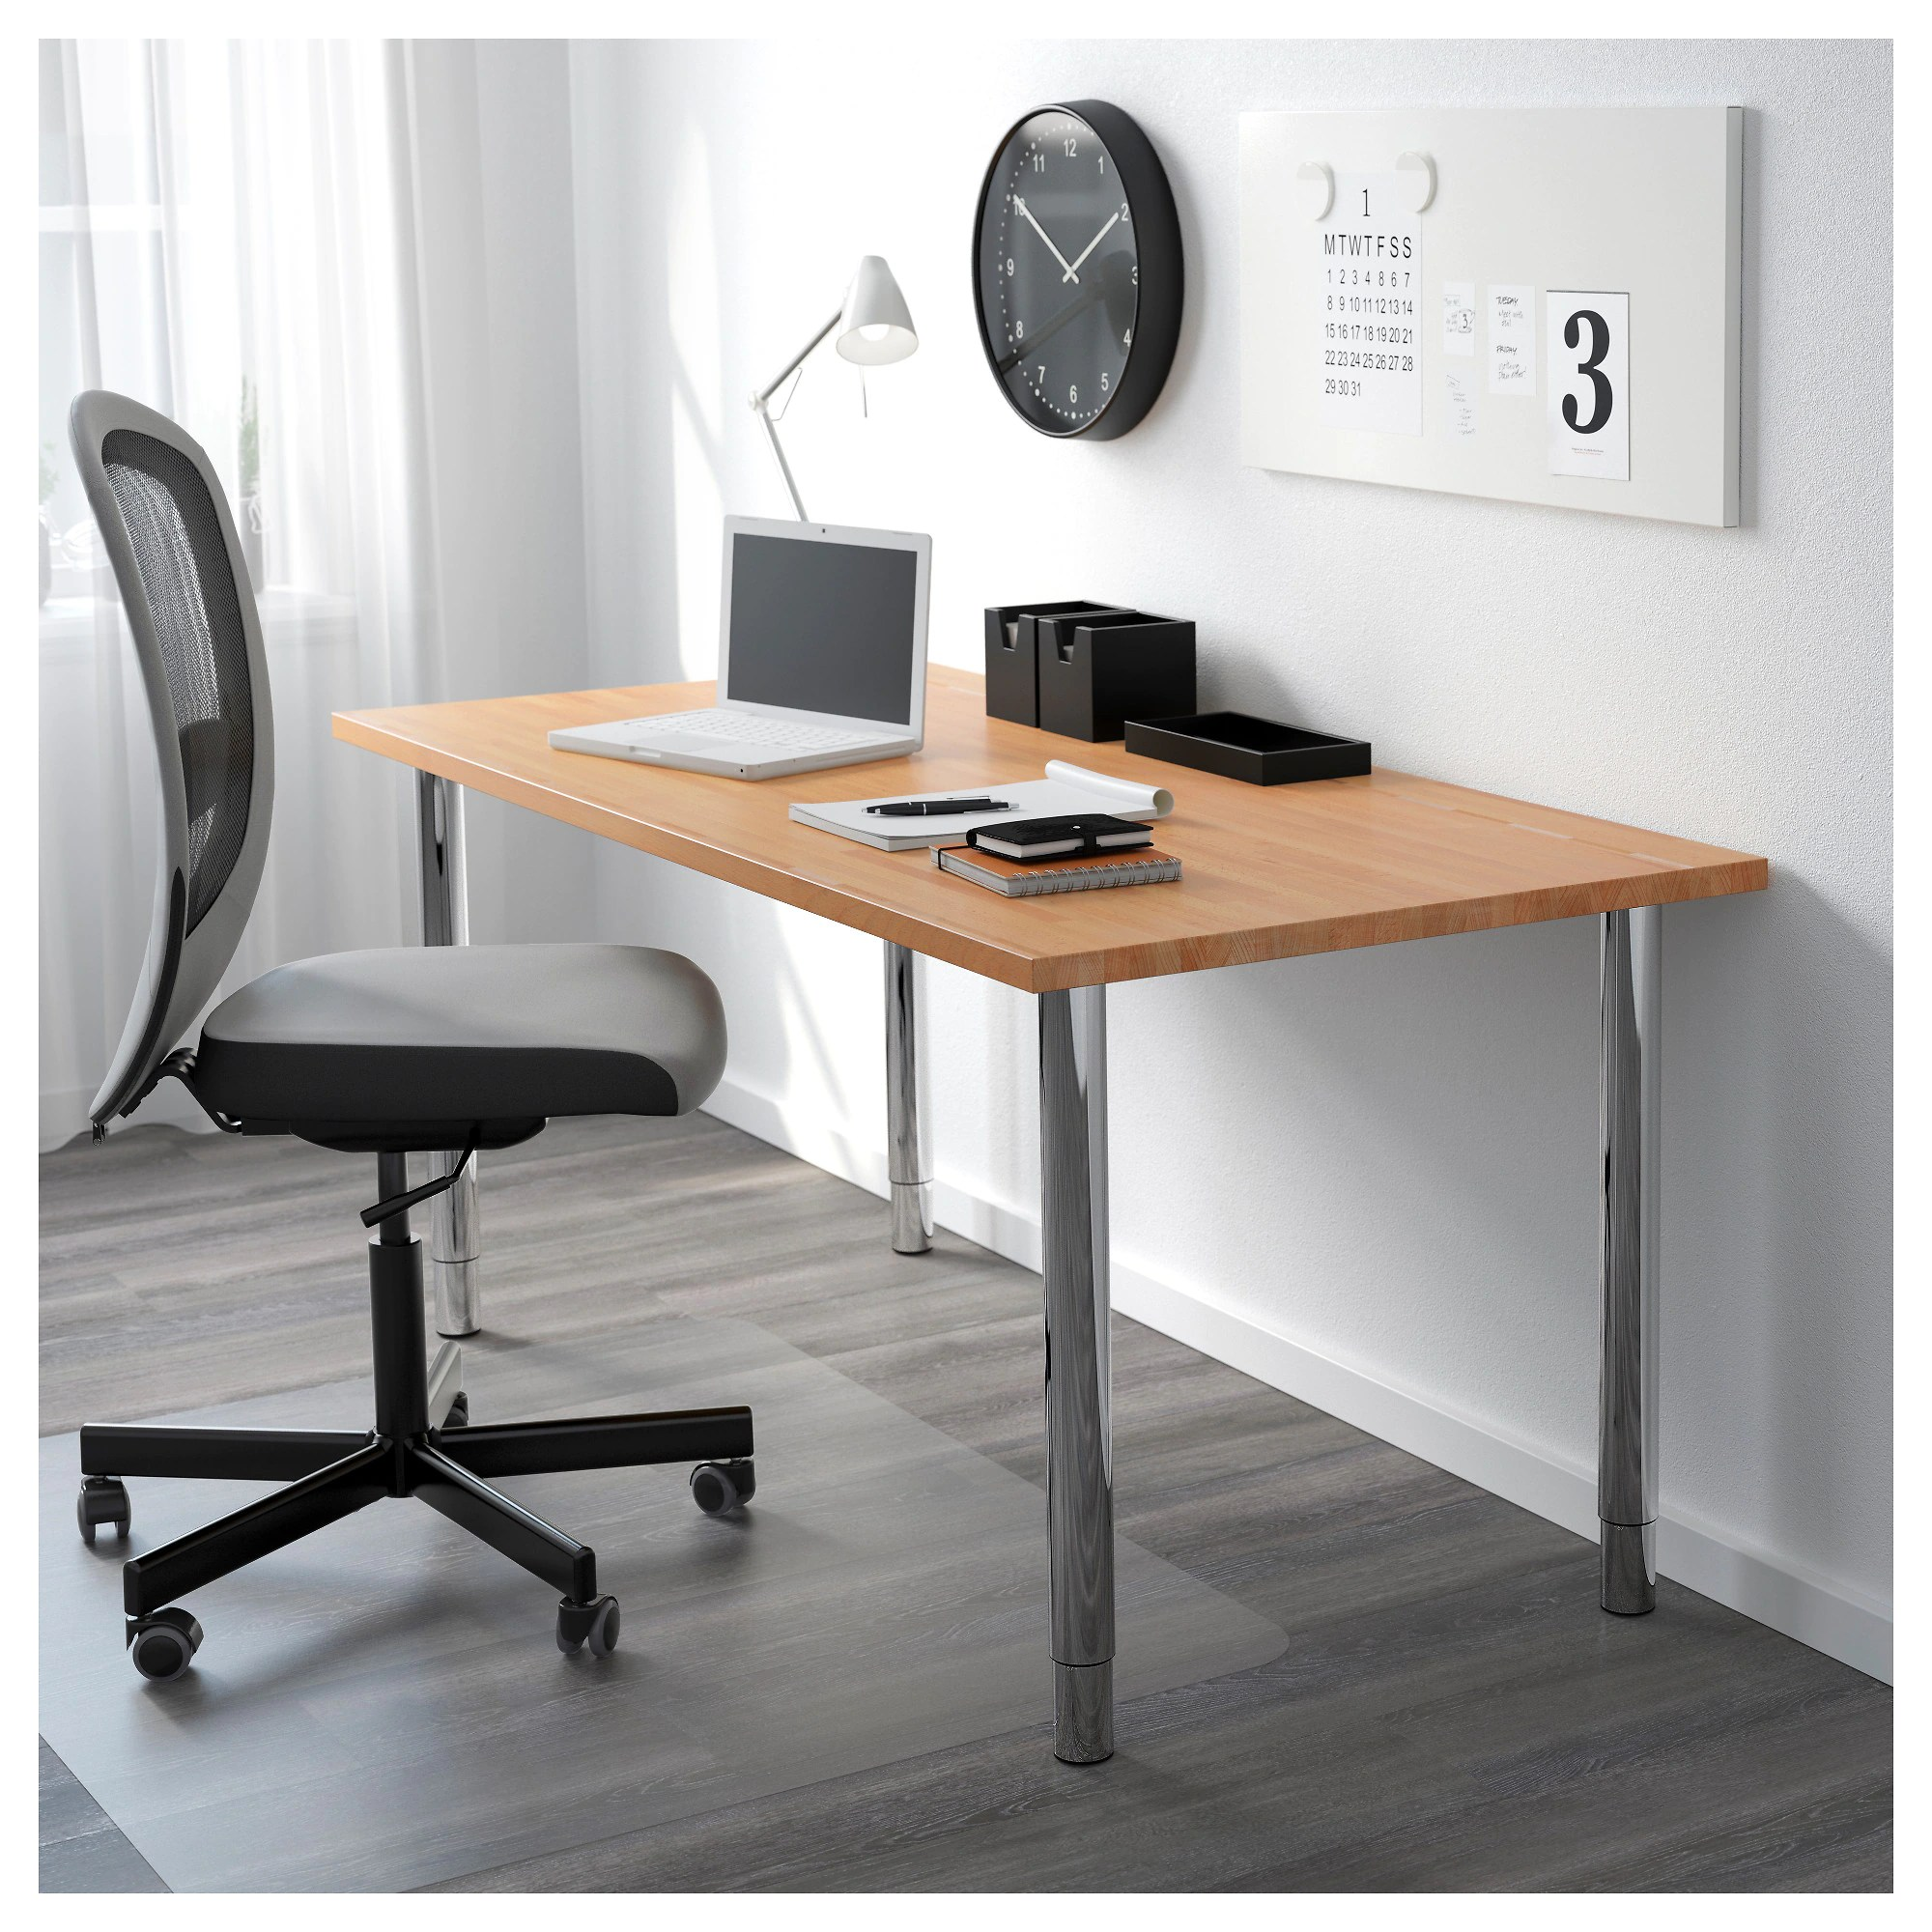 jarvis chair oz design laptop stand gerton tabletop ikea